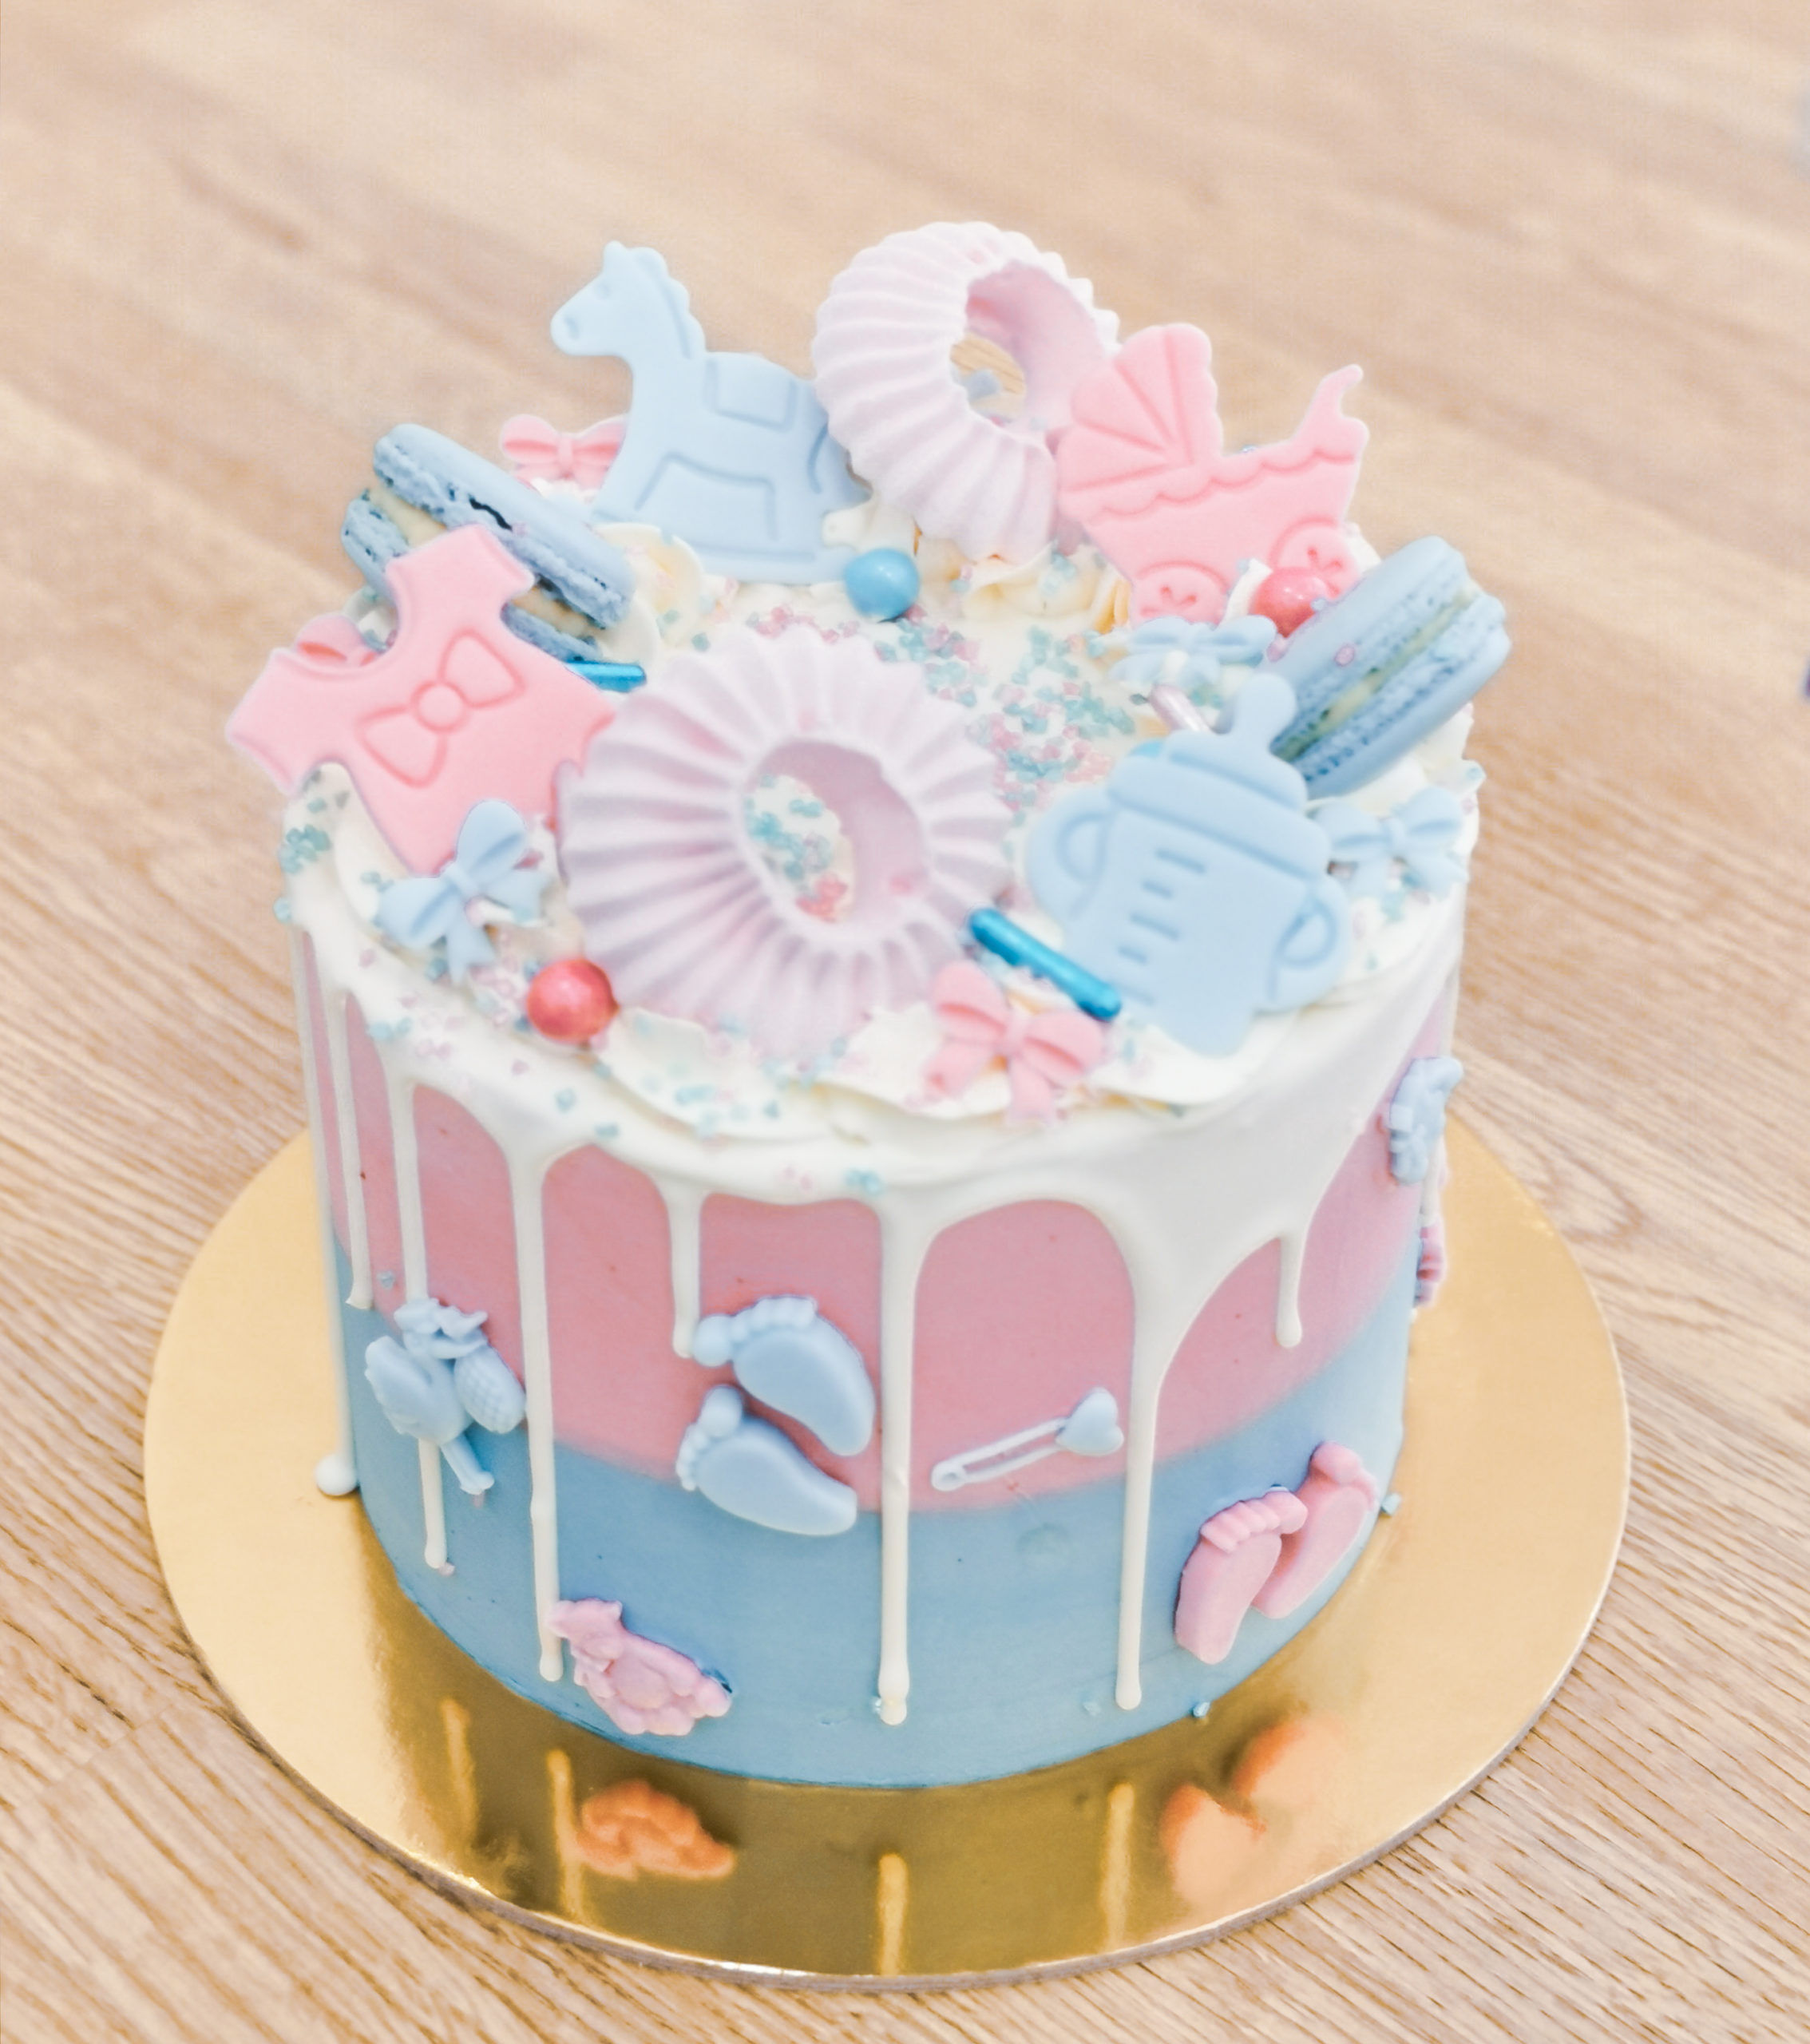 drip cake rosa azzurra gender reveal boy or girl?